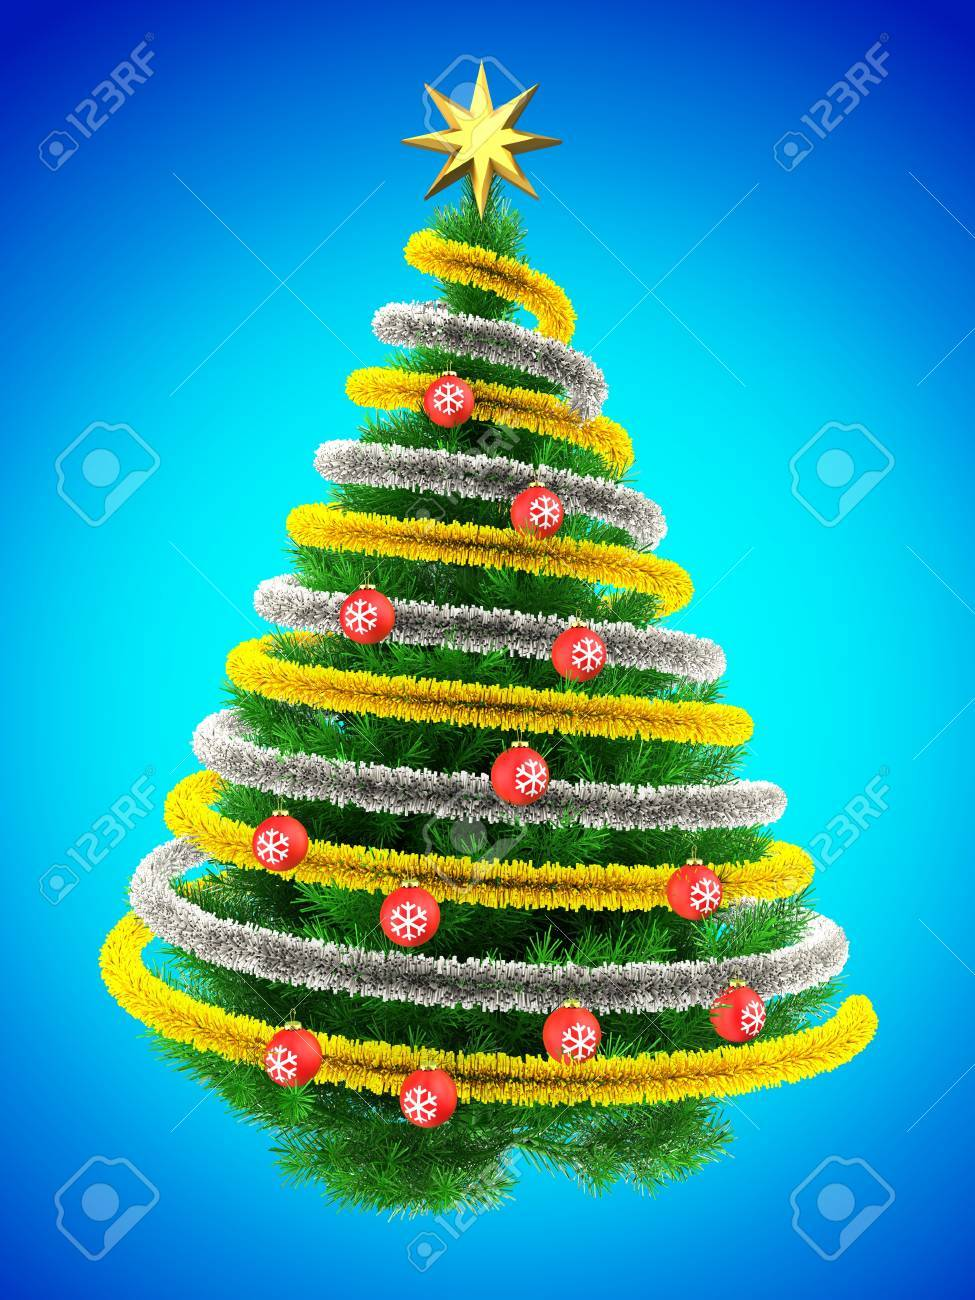 3d Illustration Of Green Christmas Tree Over Blue With Red Balls Stock Photo Picture And Royalty Free Image Image 87532968